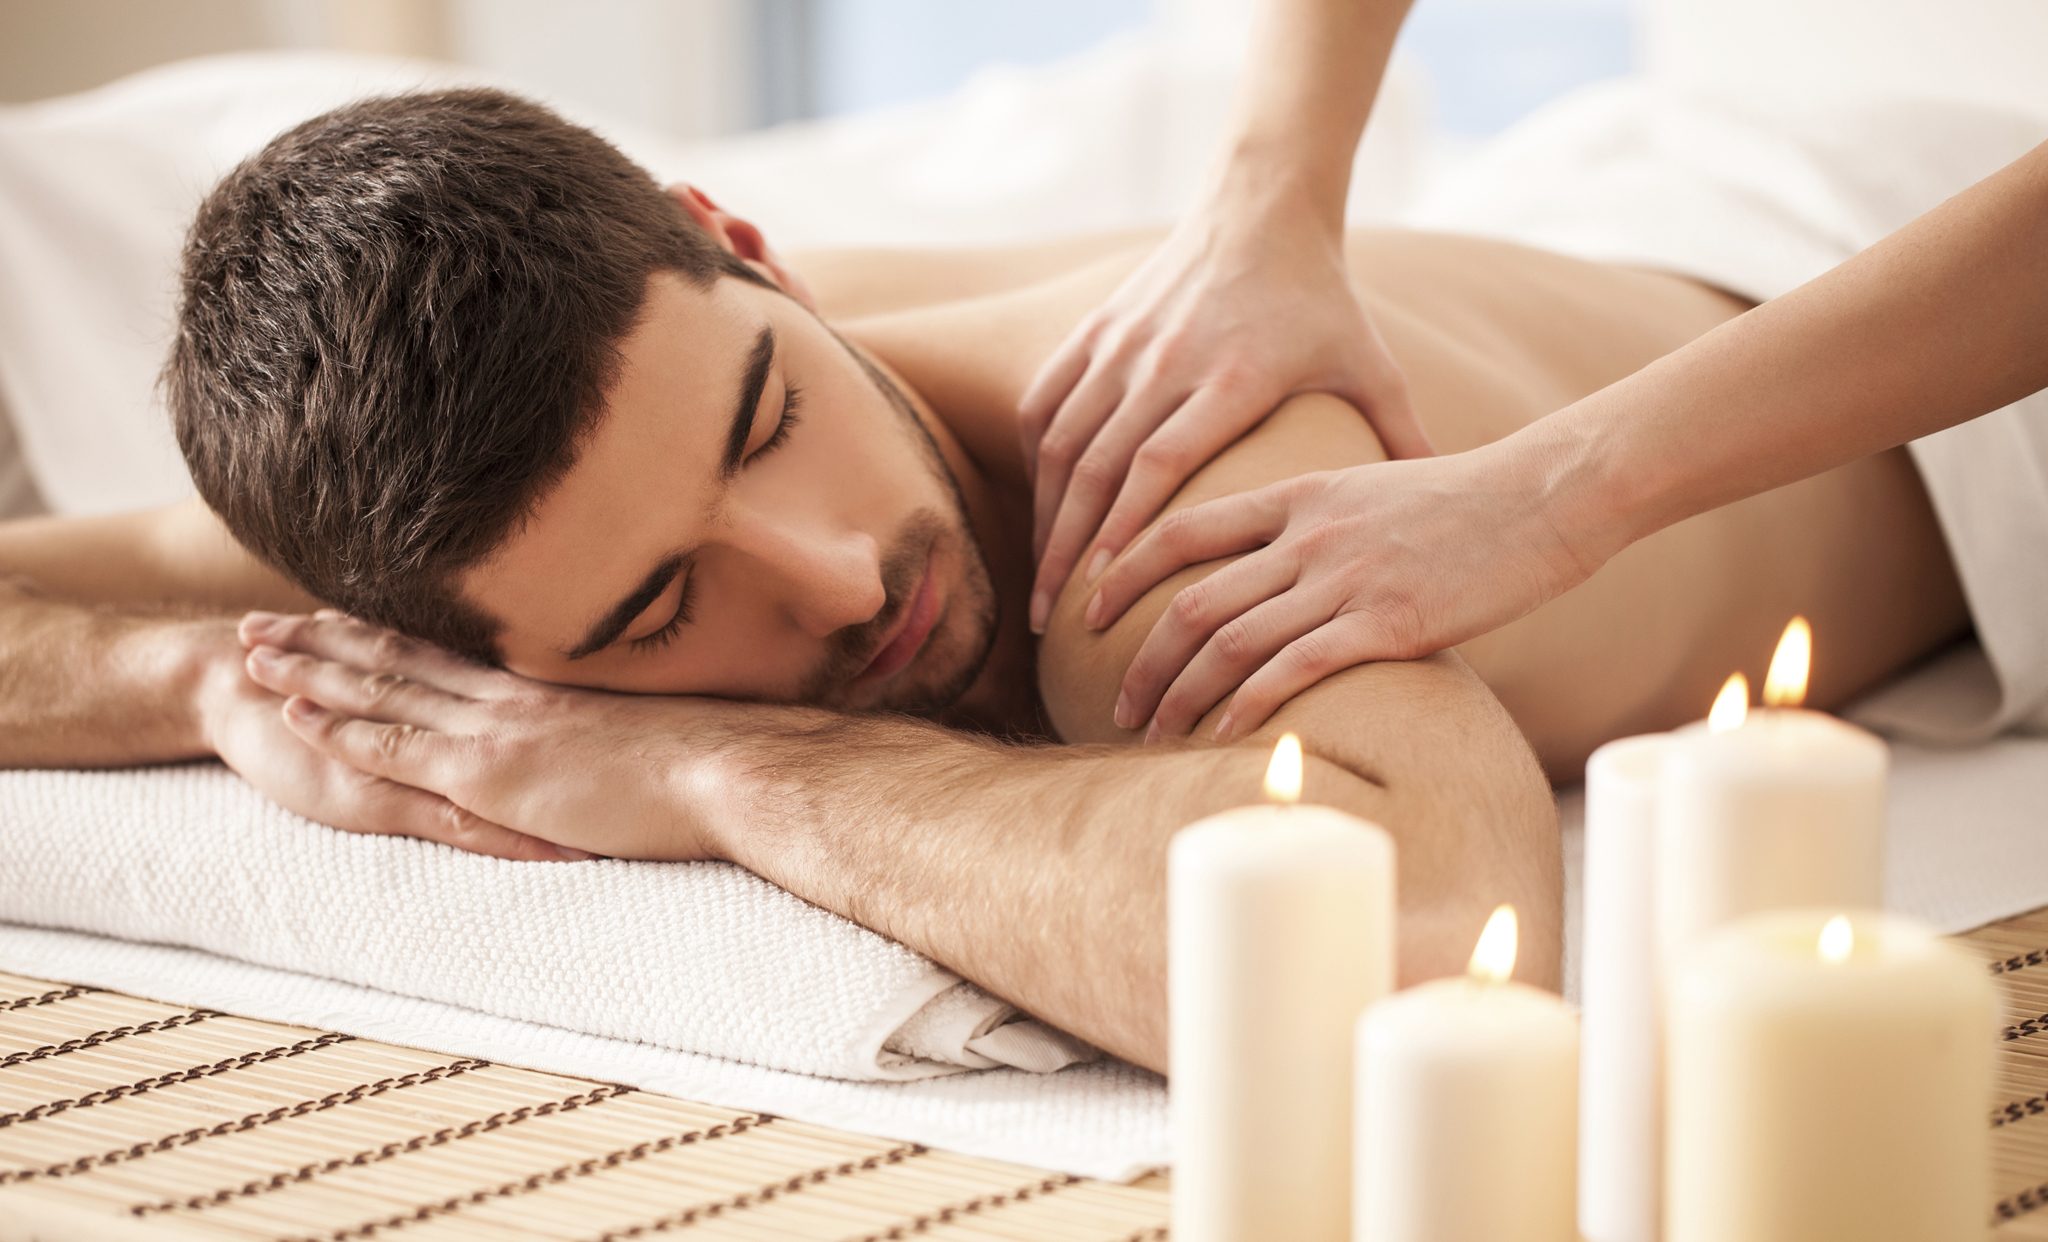 Female to Male Body Massage in Pune at an Affordable Price